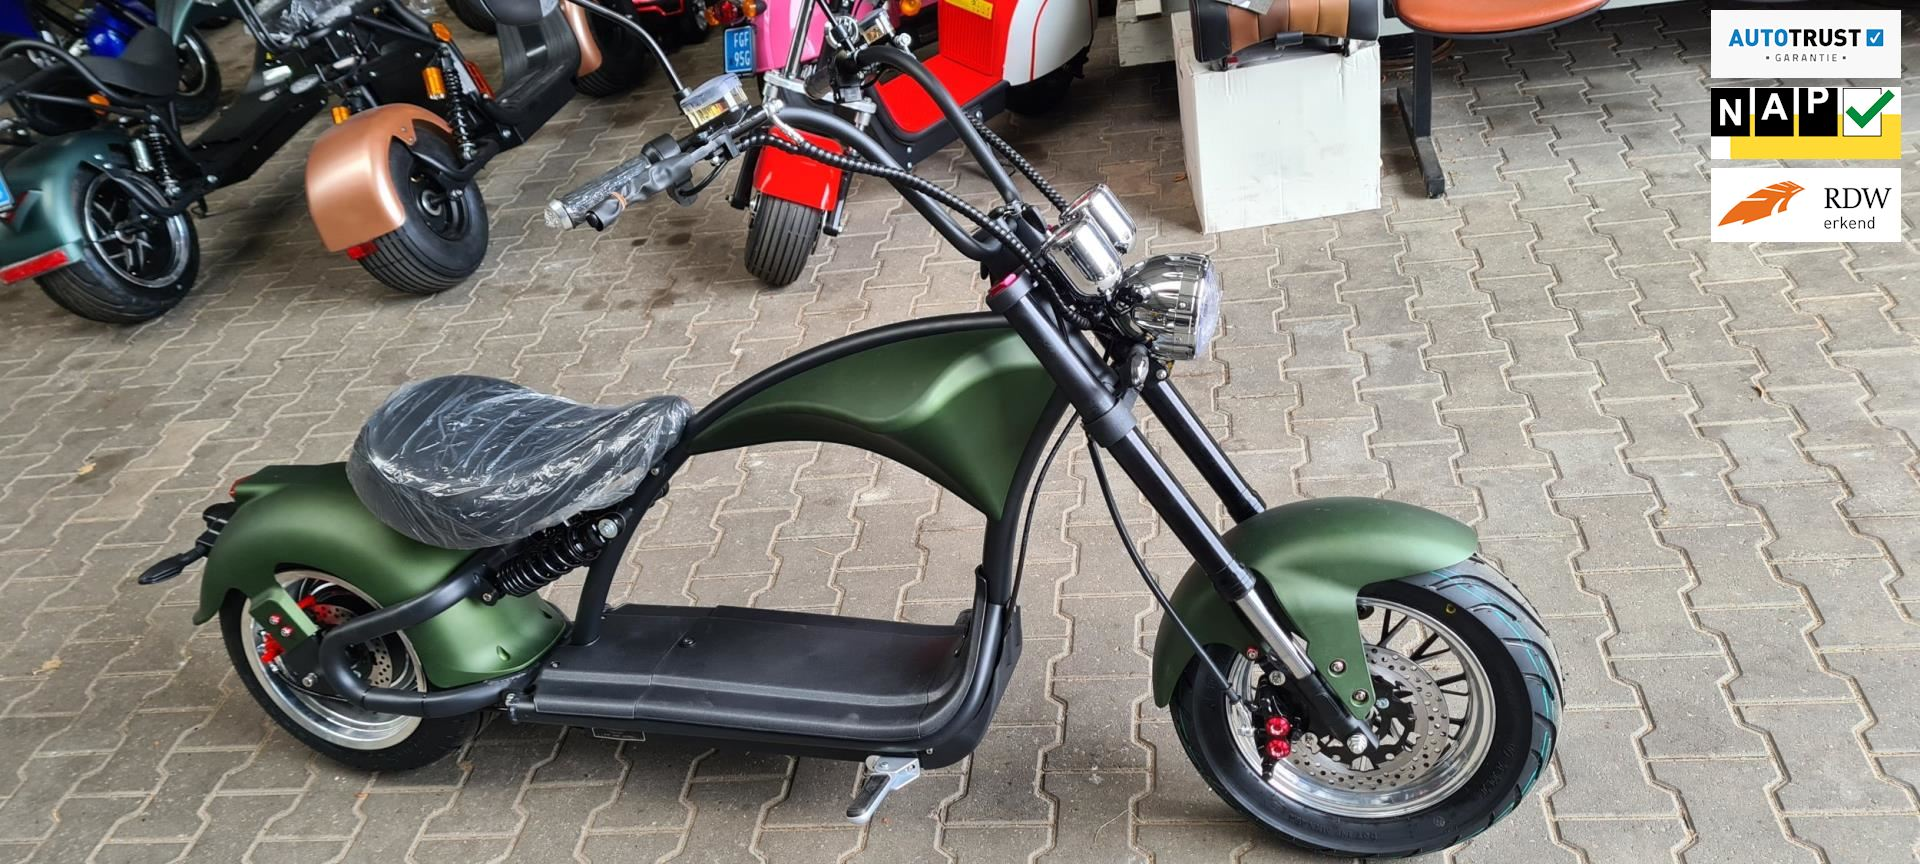 MP1 Snorscooter occasion - Quality Design & Services